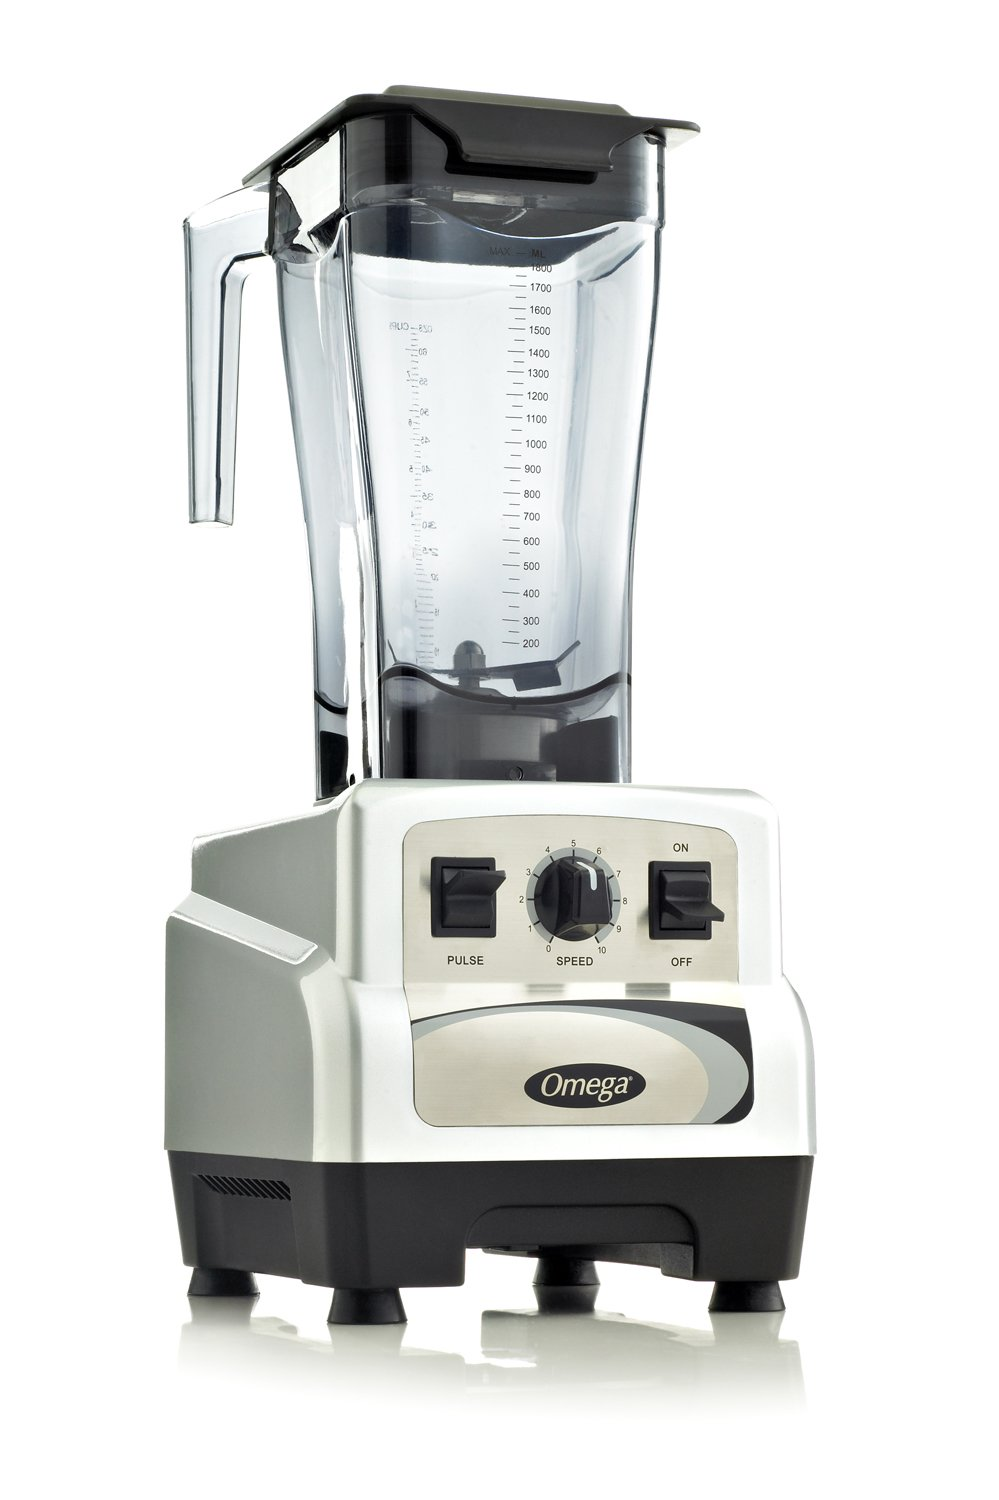 Omega BL460S 3 Peak Horse Power Commercial Blender, Variable Speed with Pulse, 64-Ounce, Silver (Discontinued by Manufacturer)